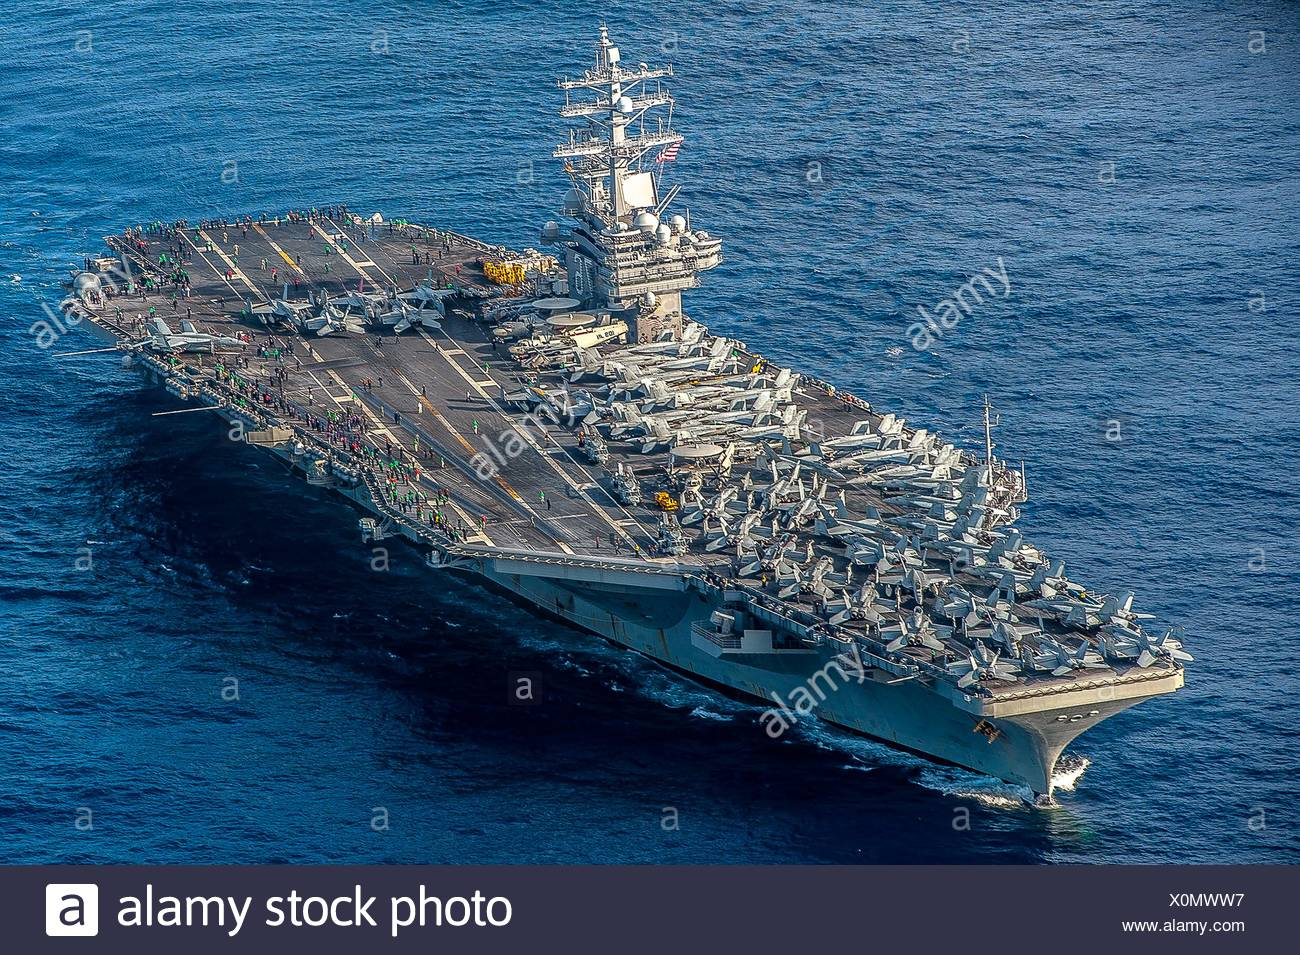 Cvn 76 stock photos cvn 76 stock images alamy - Portaerei ronald reagan ...